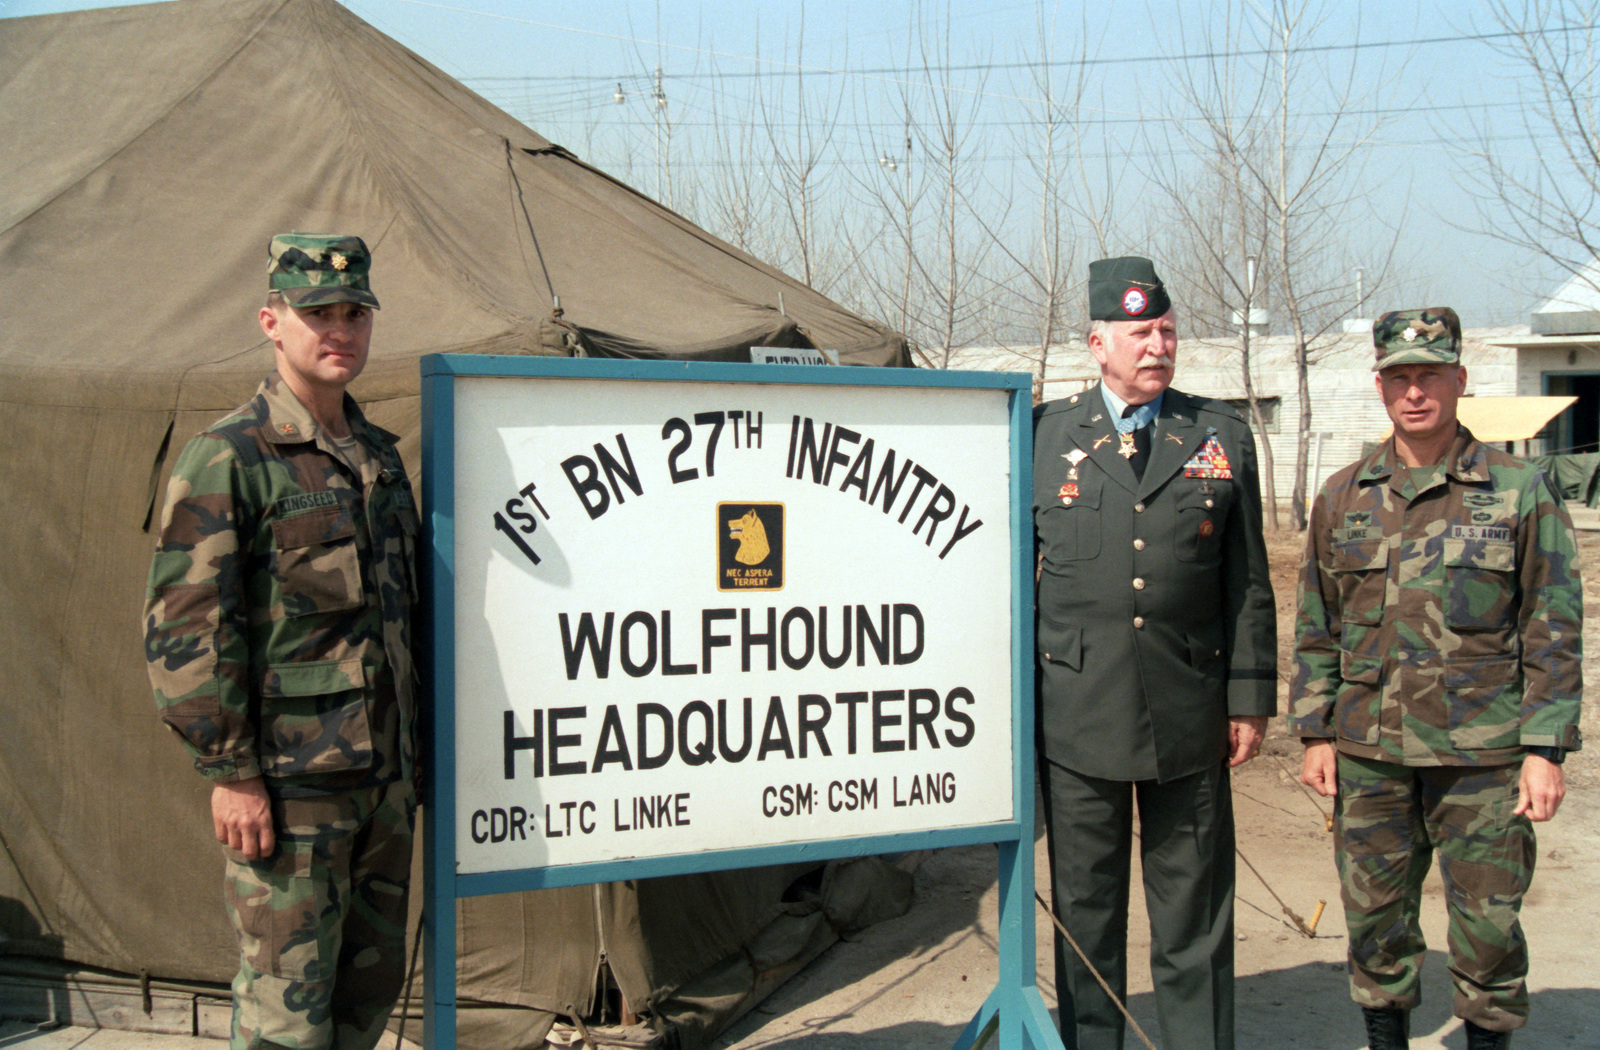 Retired Colonel (COL) Lewis Millett, a recipient of the Medal of Honor during the Korean War, visits his former unit, the 27th Infantry, 25th Infantry Division, during the joint U.S./South Korean Exercise TEAM SPIRIT'85.  On the left is Major (MAJ) Cole Kingseed, executine officer of the 1st Battalion, and on the left is Lieutenant Colonel (LTC) H.T. Linke, Commander